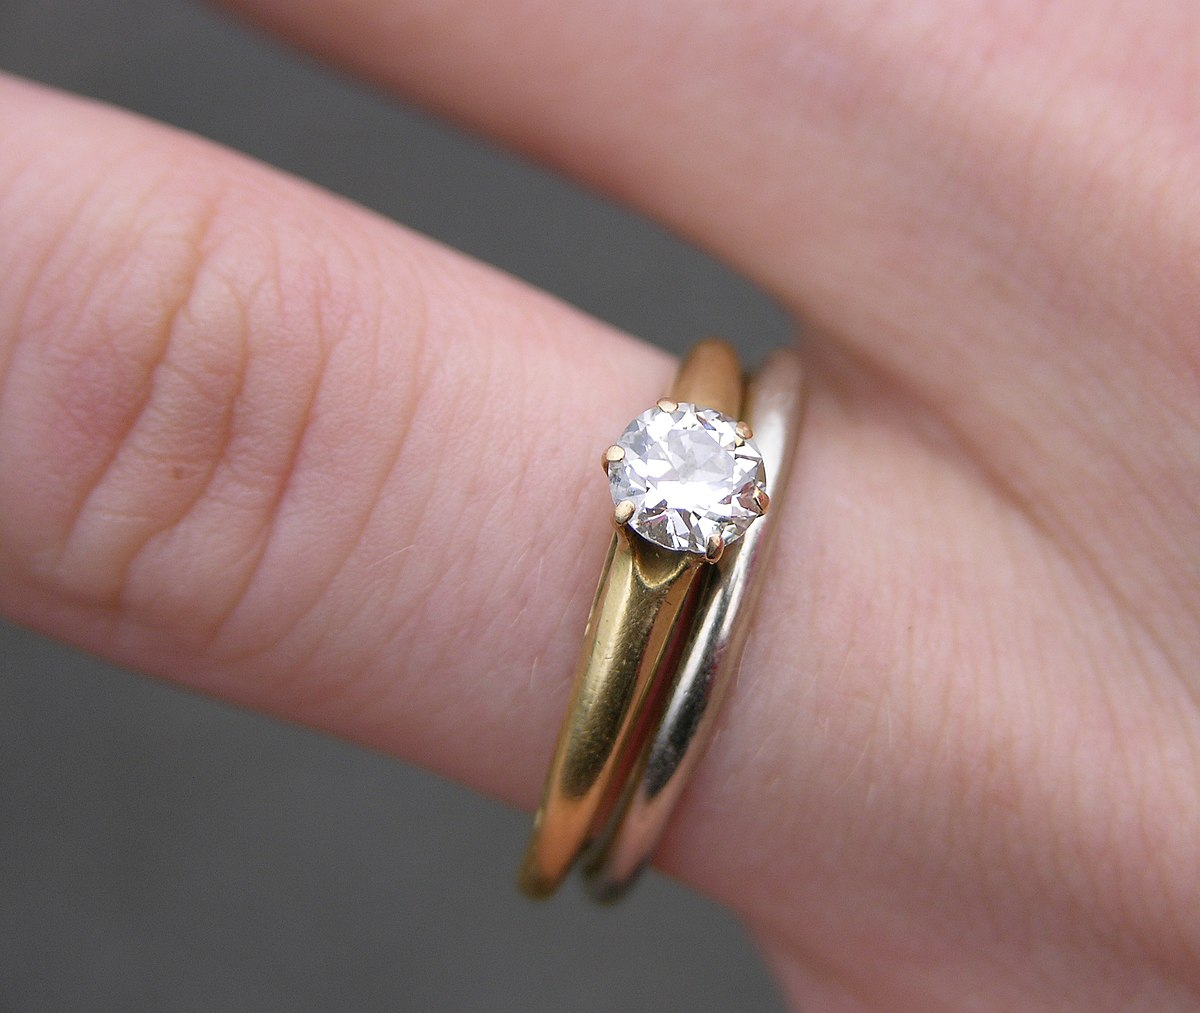 engagement ring wikipedia - Wedding Bands And Engagement Rings